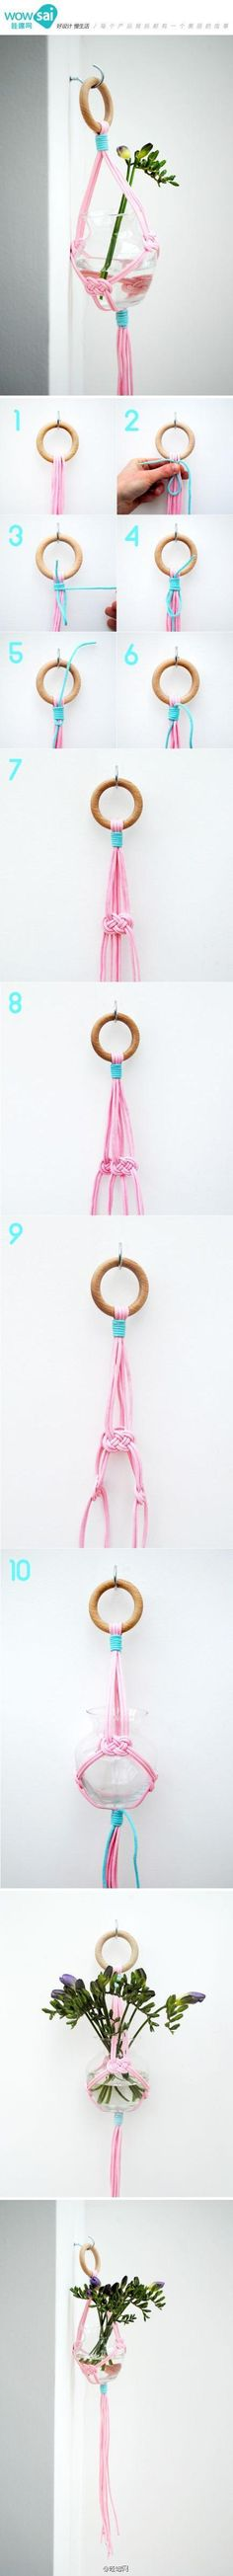 make the best use of your cords